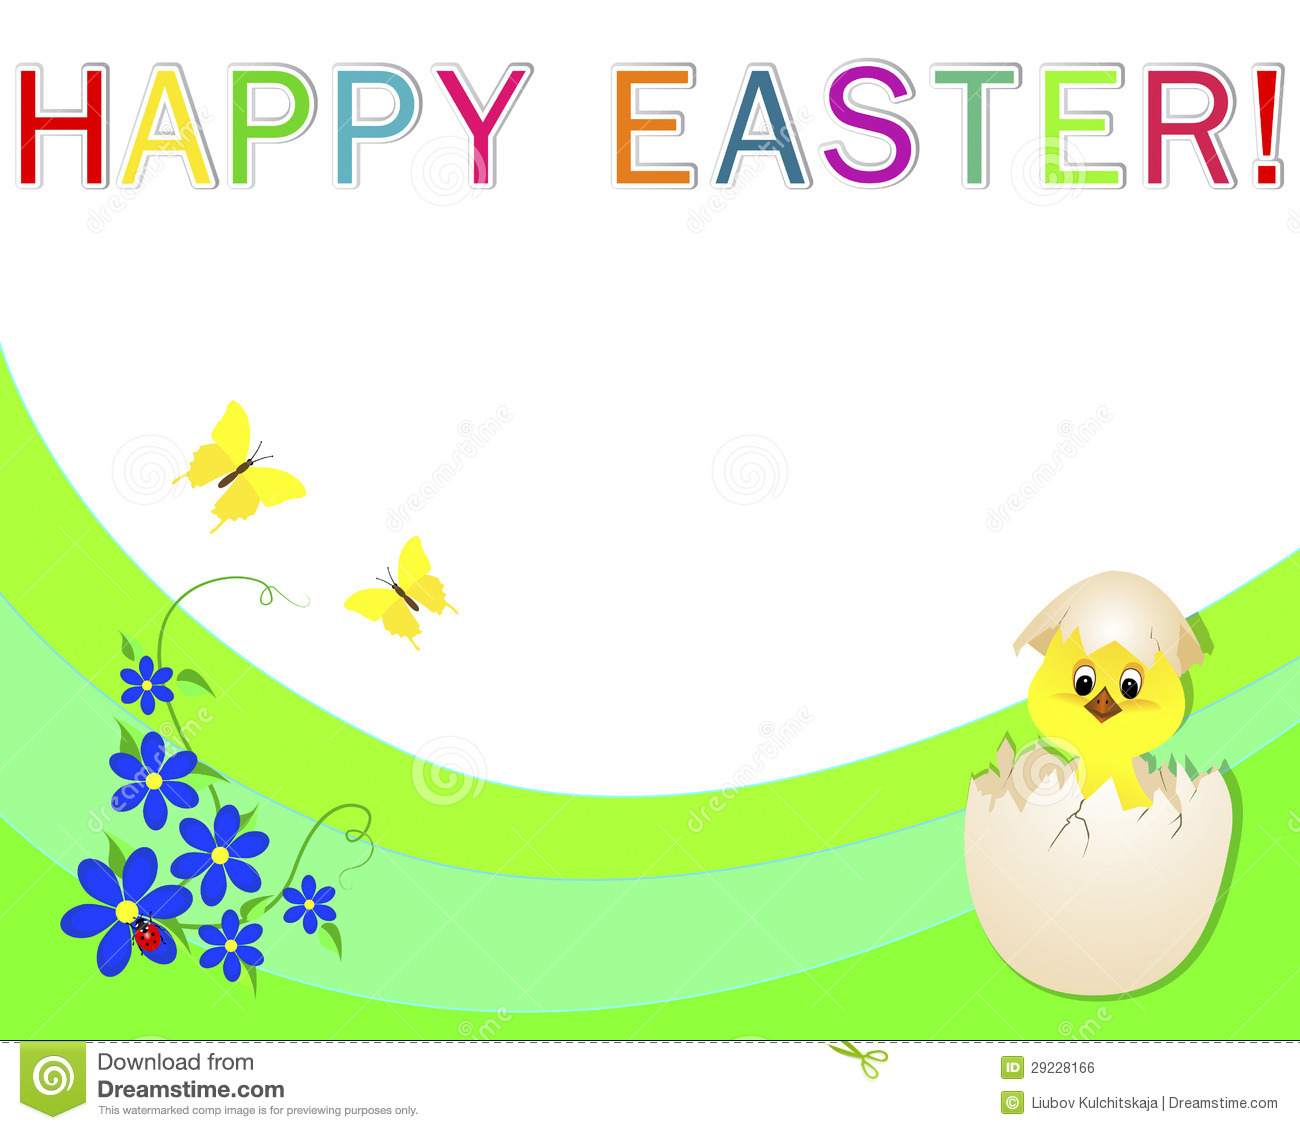 Happy Easter Religious Banner - Floral delivery